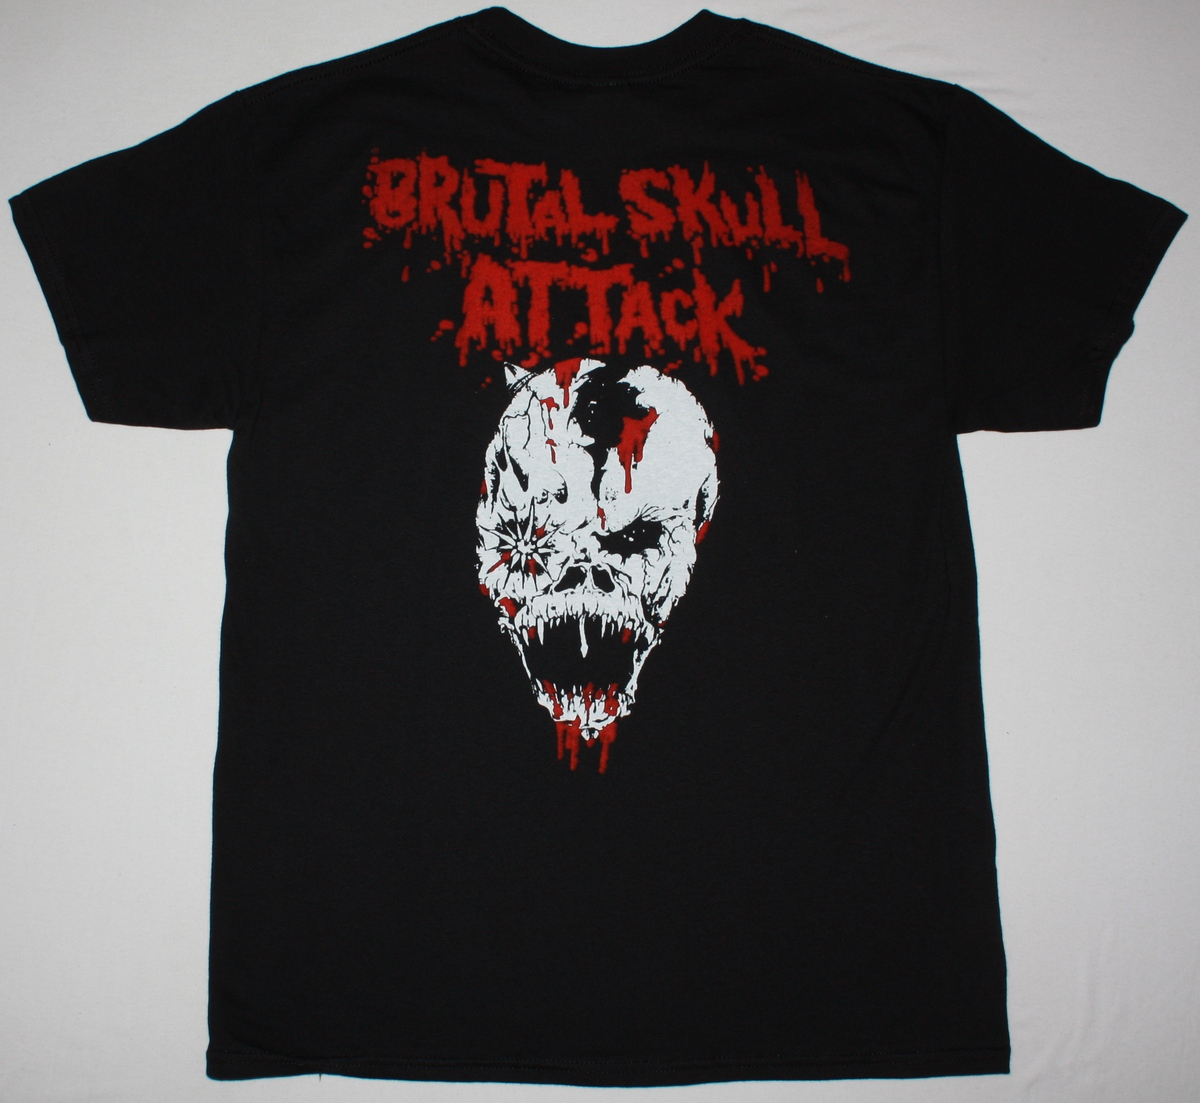 DEMOLITION HAMMER BRUTAL SKULL ATTACK NEW BLACK T-SHIRT